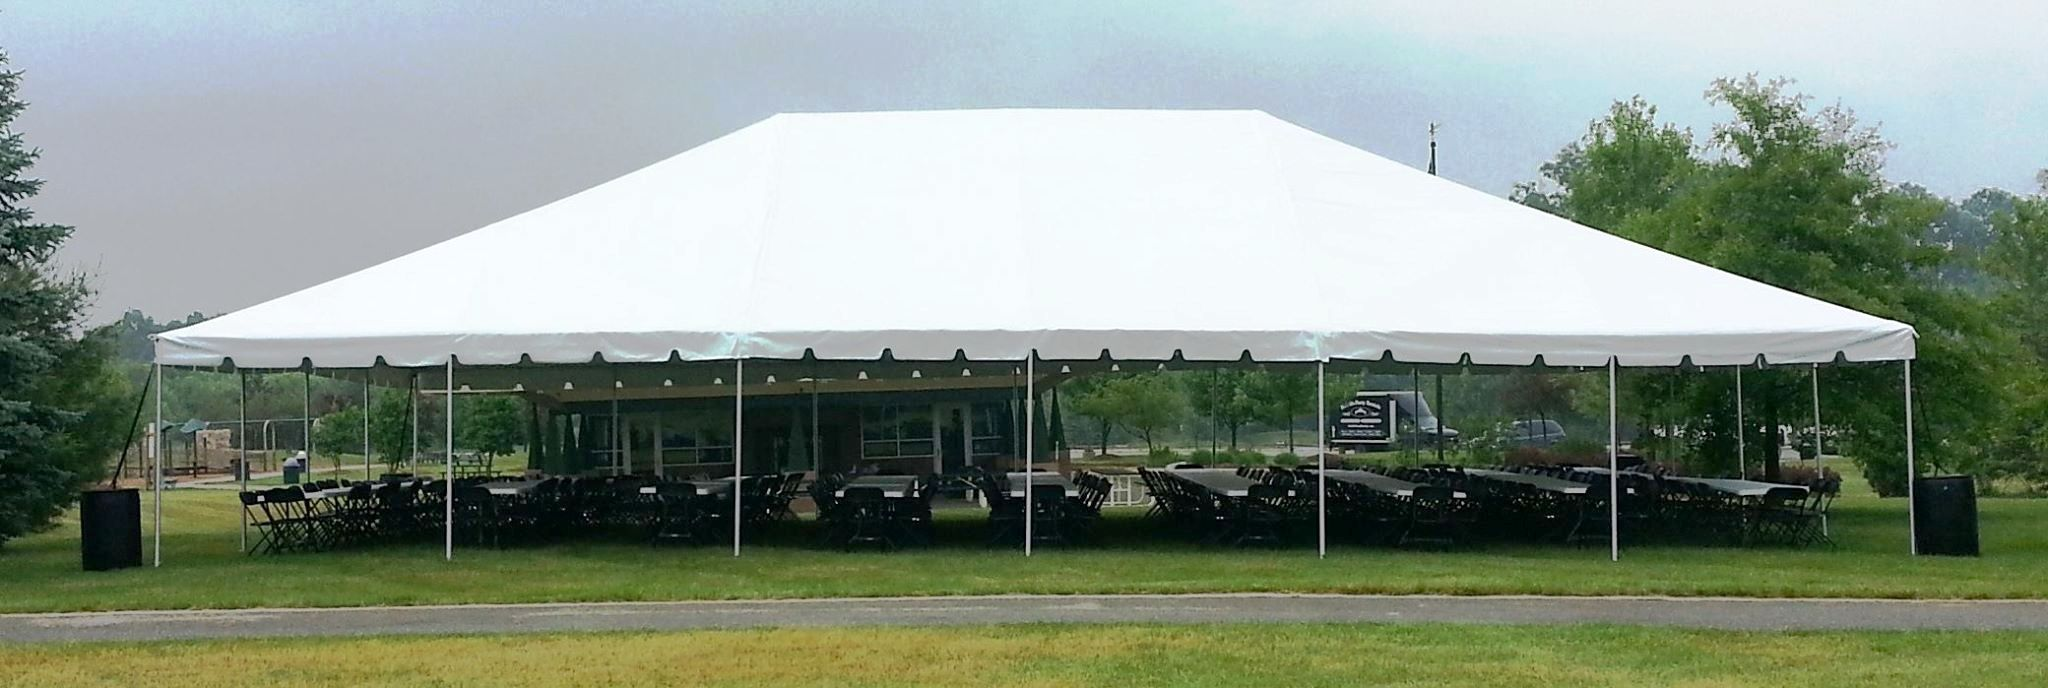 40 x 60 white frame tent a z rent all. Black Bedroom Furniture Sets. Home Design Ideas